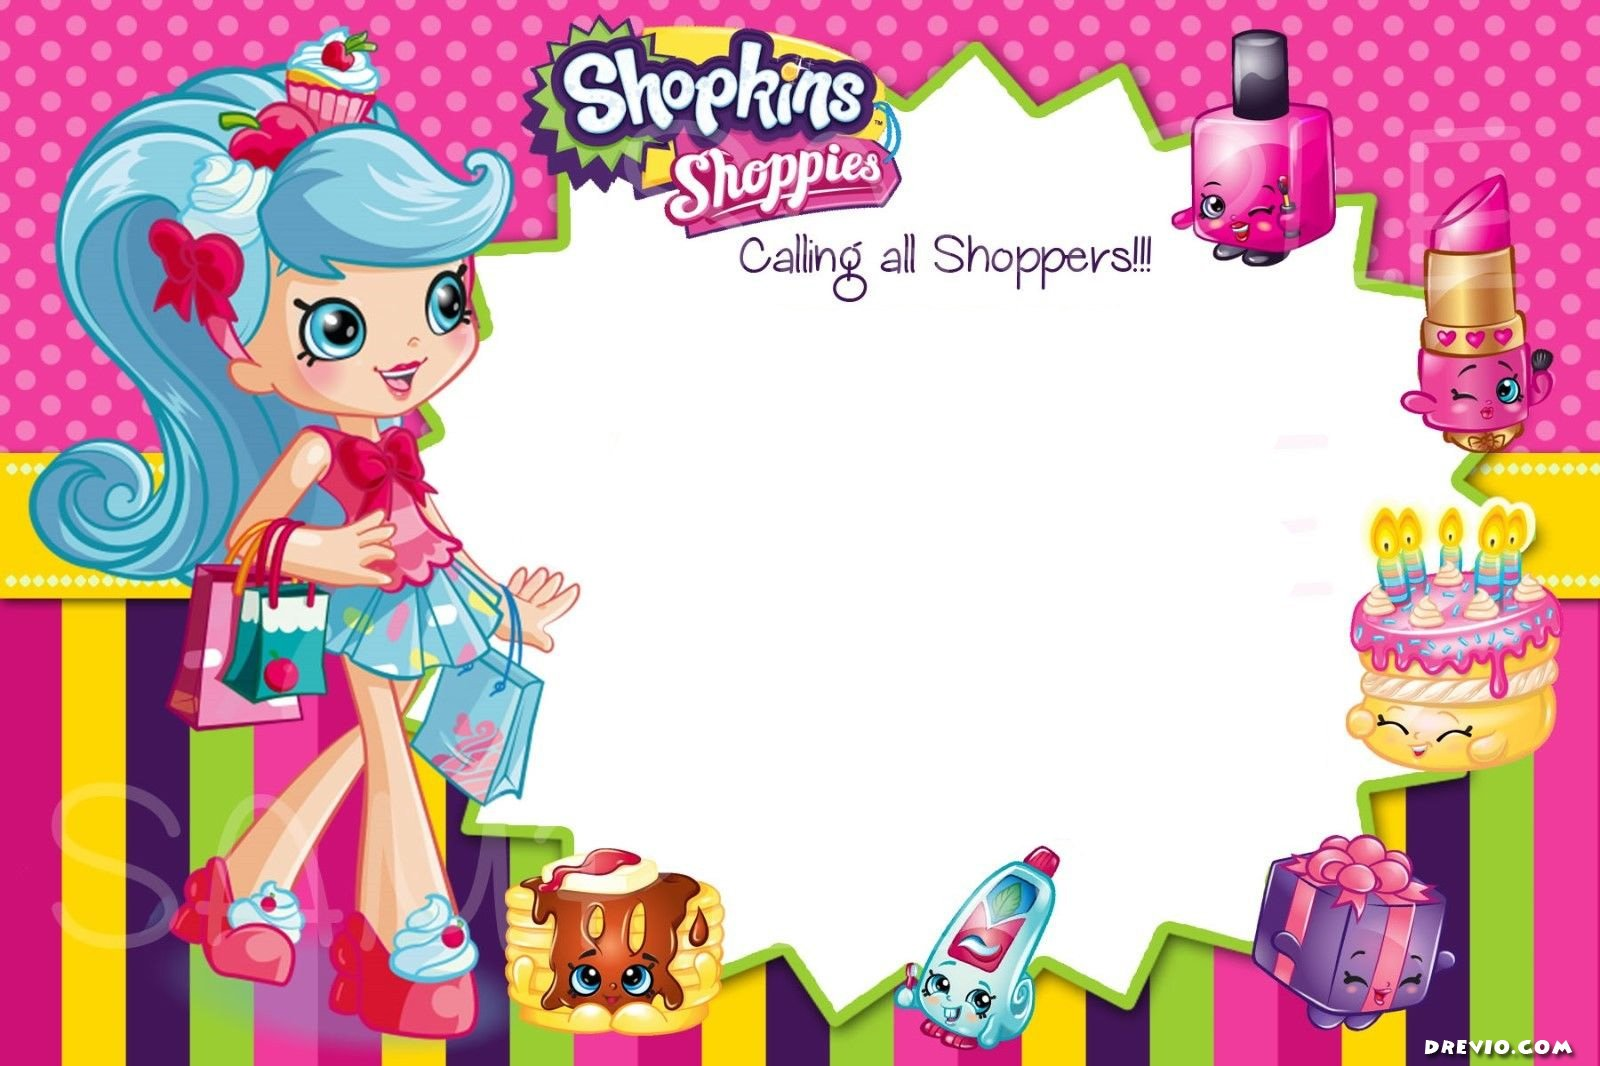 How To Download This FREE Shopkins Invitation? Itu0027s Super Simple! Simply  Click On The Image And Download The Invitation. As Simple As That. Then  Print It ...